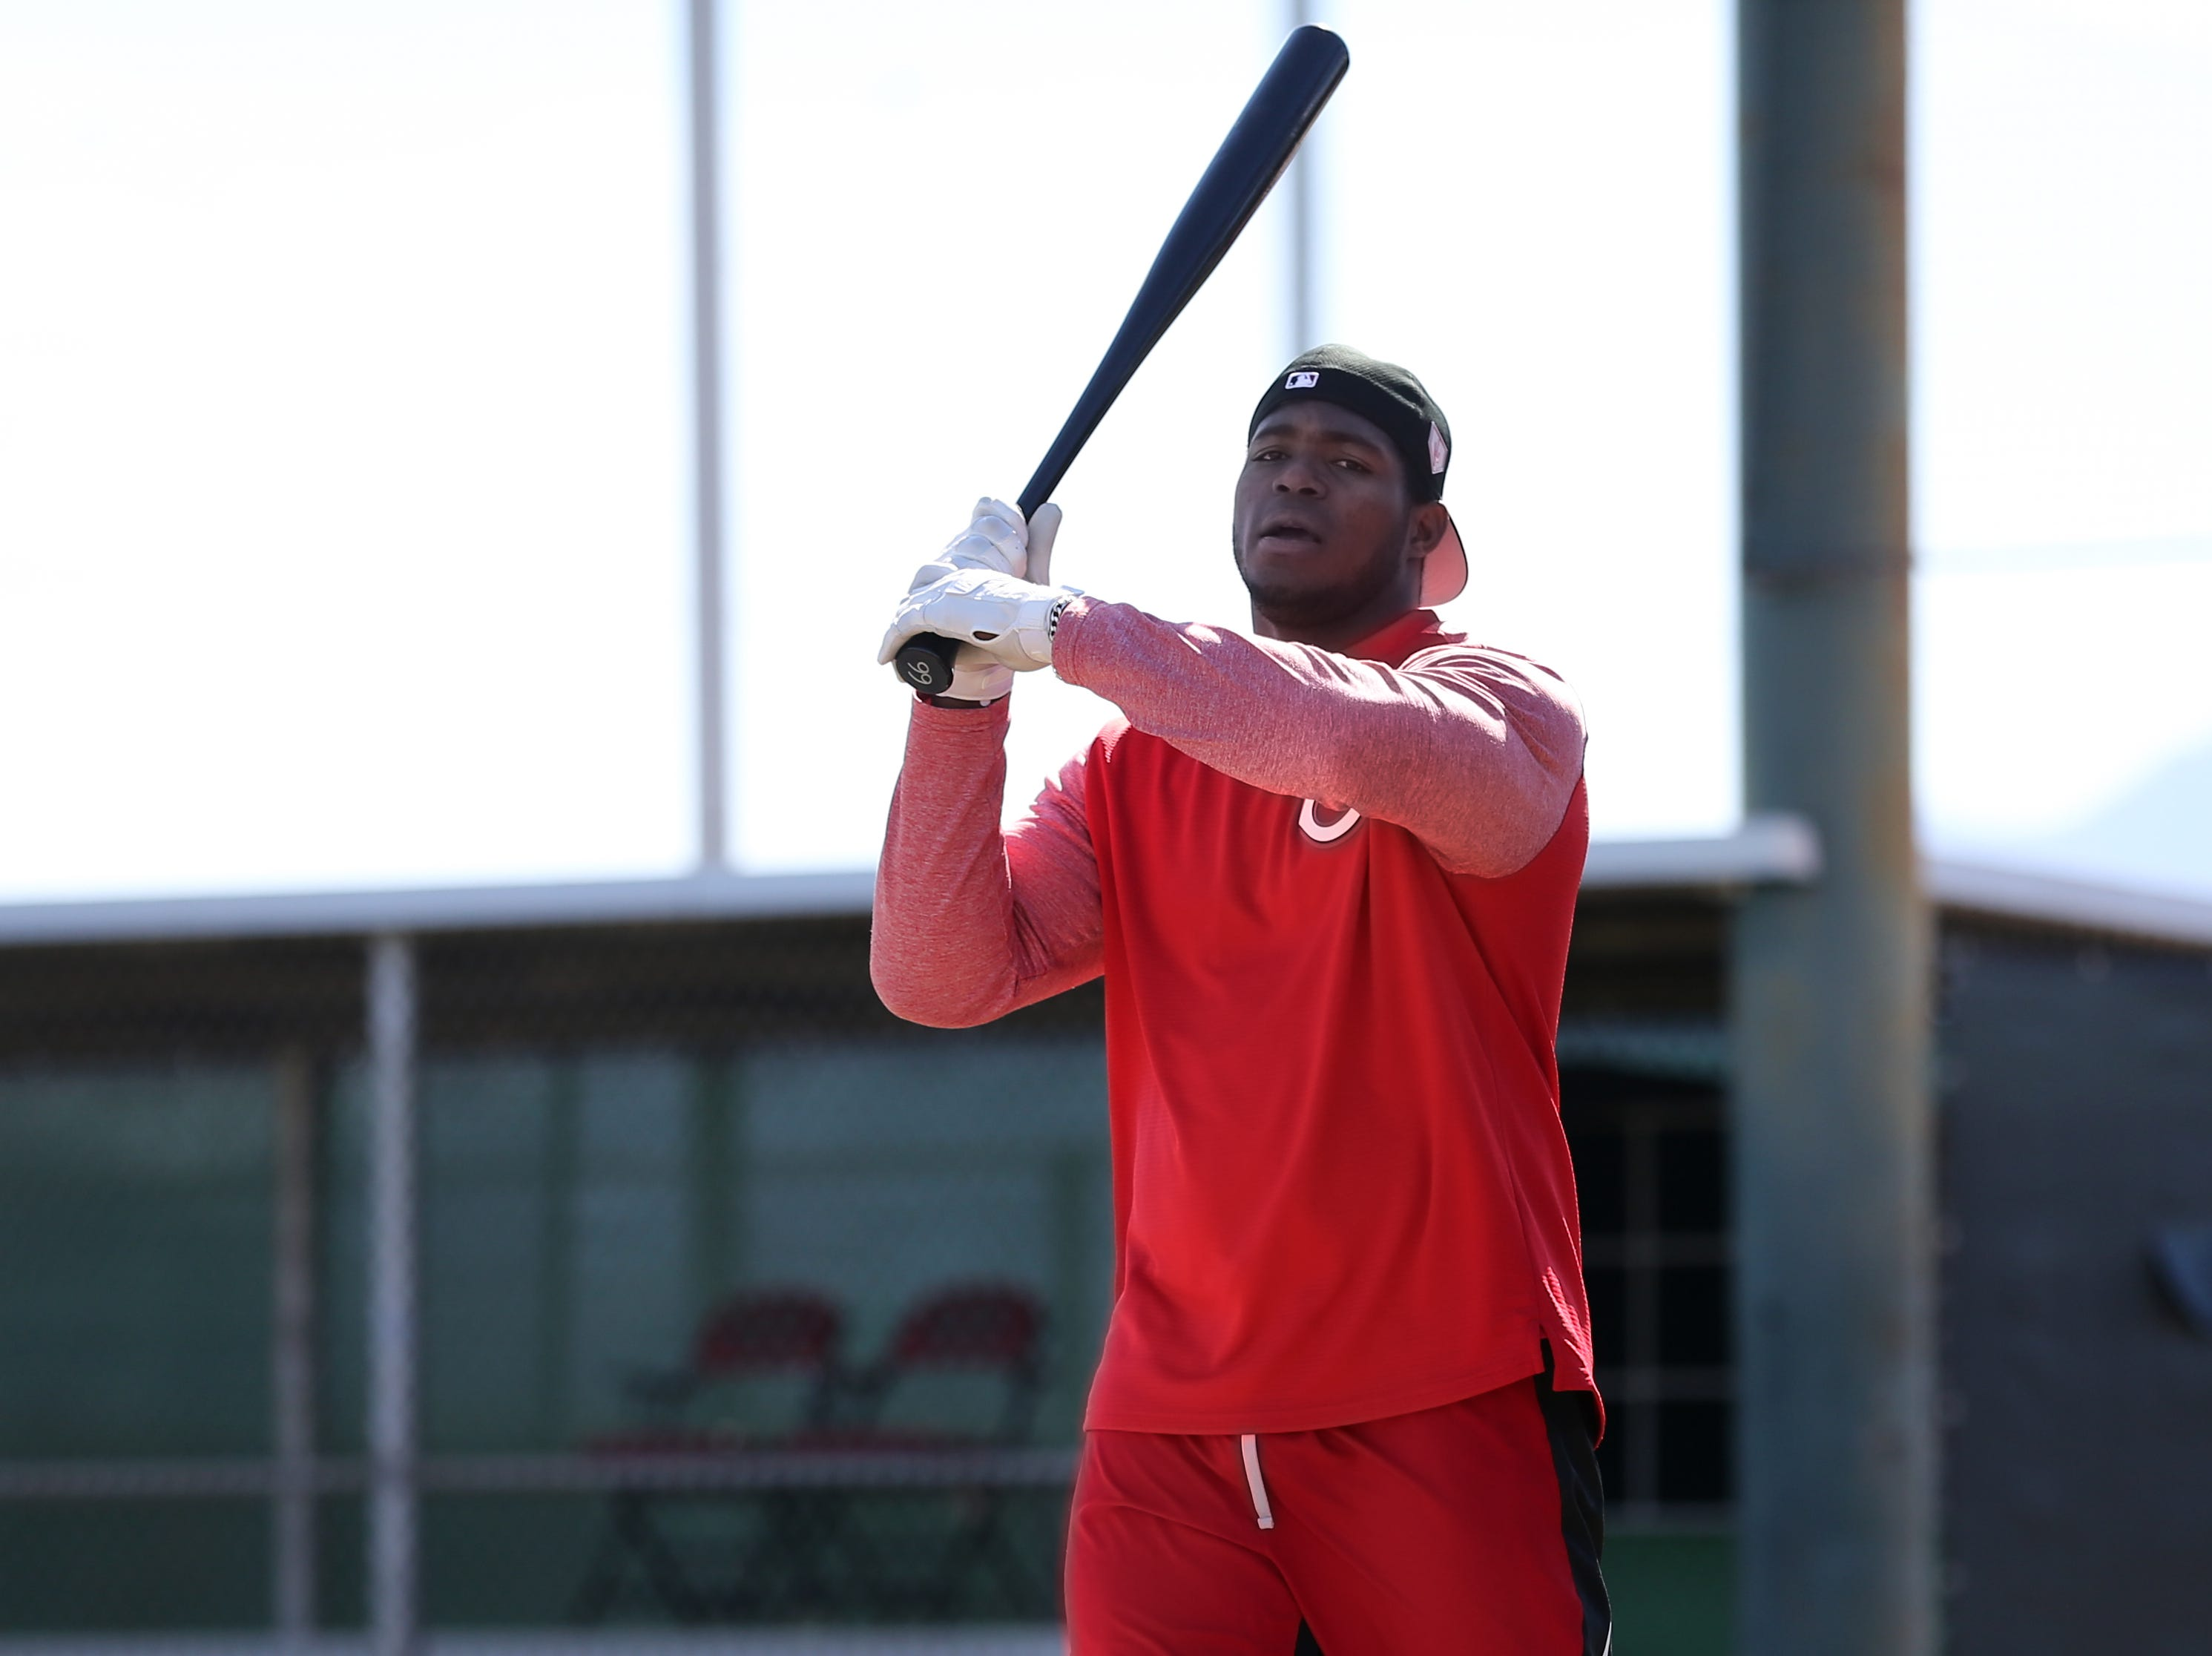 Cincinnati Reds outfielder Yasiel Puig steps to the plate for batting practice on report day for pitchers and catchers, Tuesday, Feb. 12, 2019, at the Cincinnati Reds spring training facility in Goodyear, Arizona.